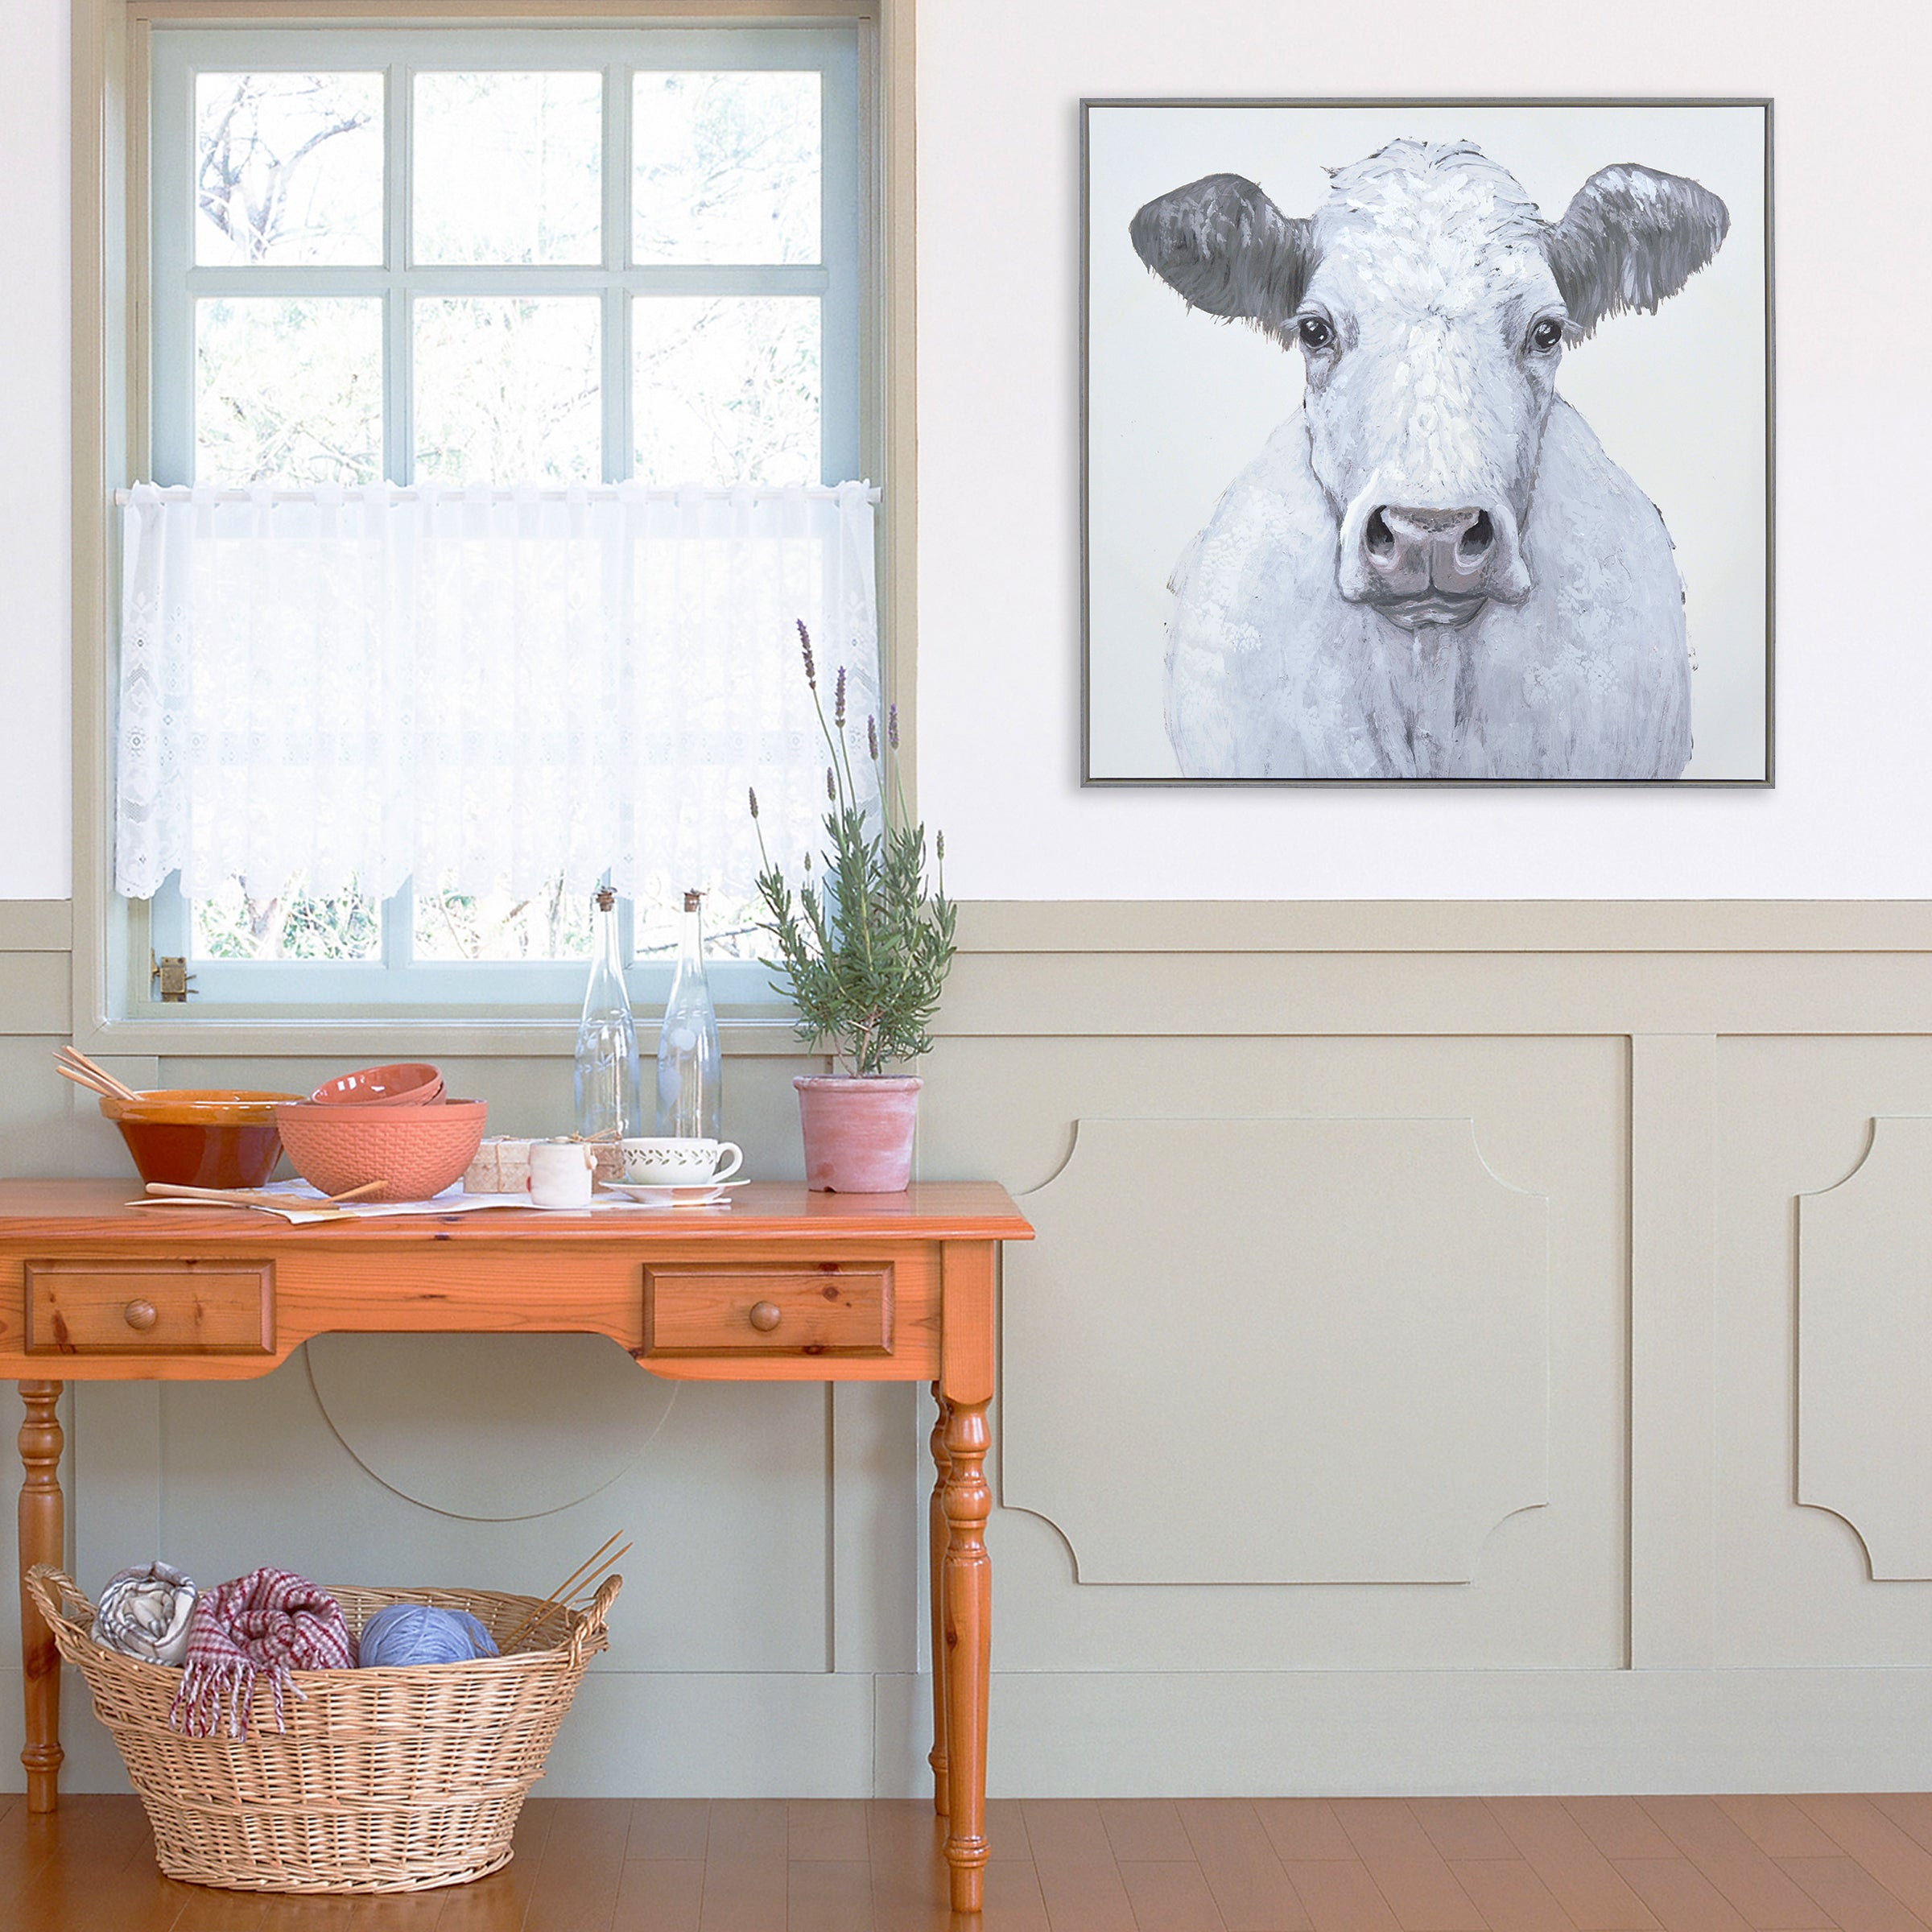 "Ava Barrett 35""x 35"" White Cow Framed Embellished Canvas Wall Art"